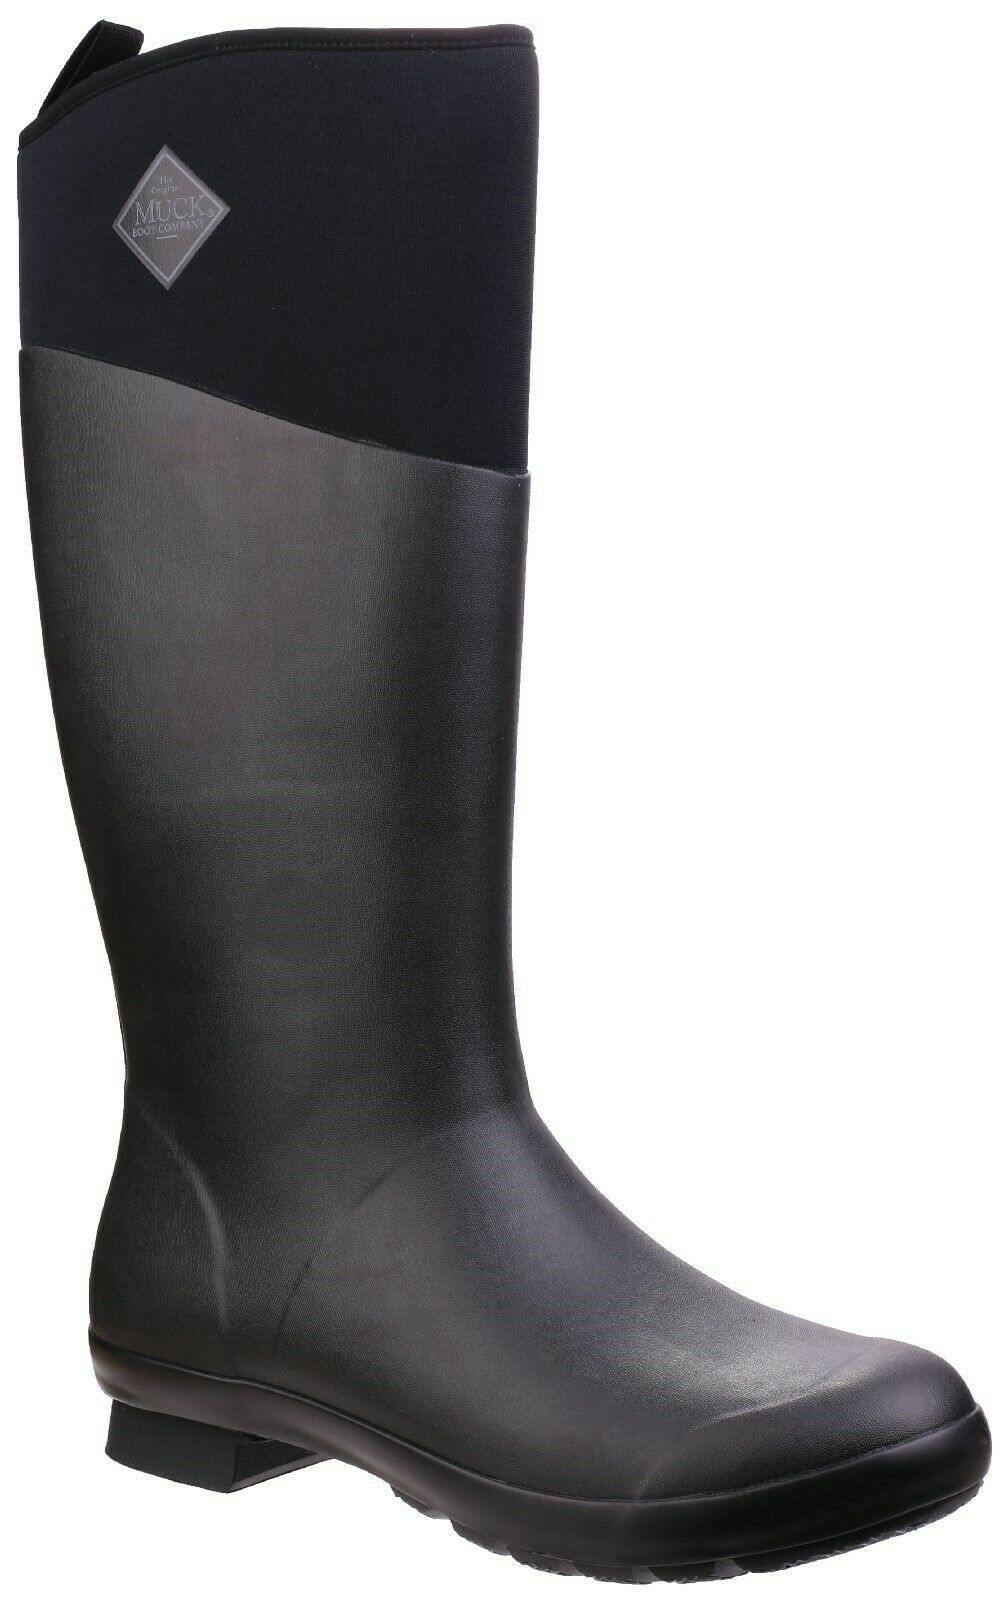 Muck Stiefel Tremont Matt Tall schwarz waterproof wellington Stiefel